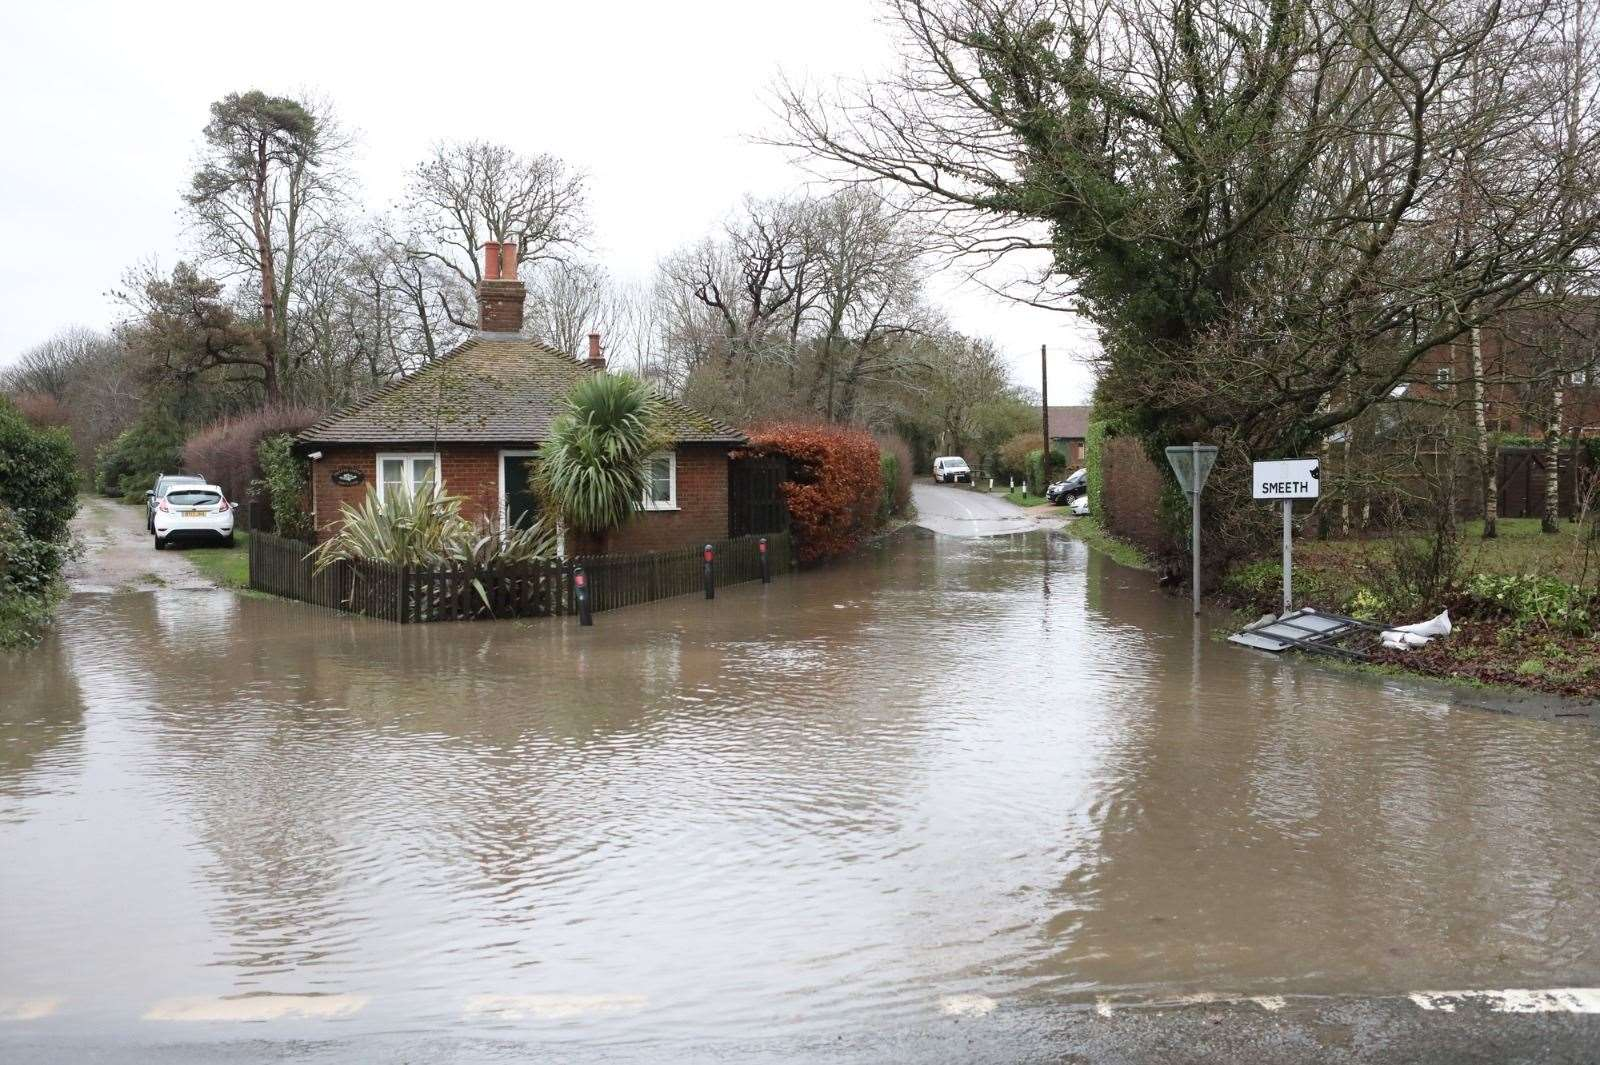 Roads near riversides across Kent could be hit by flooding. Archive picture: UKNIP